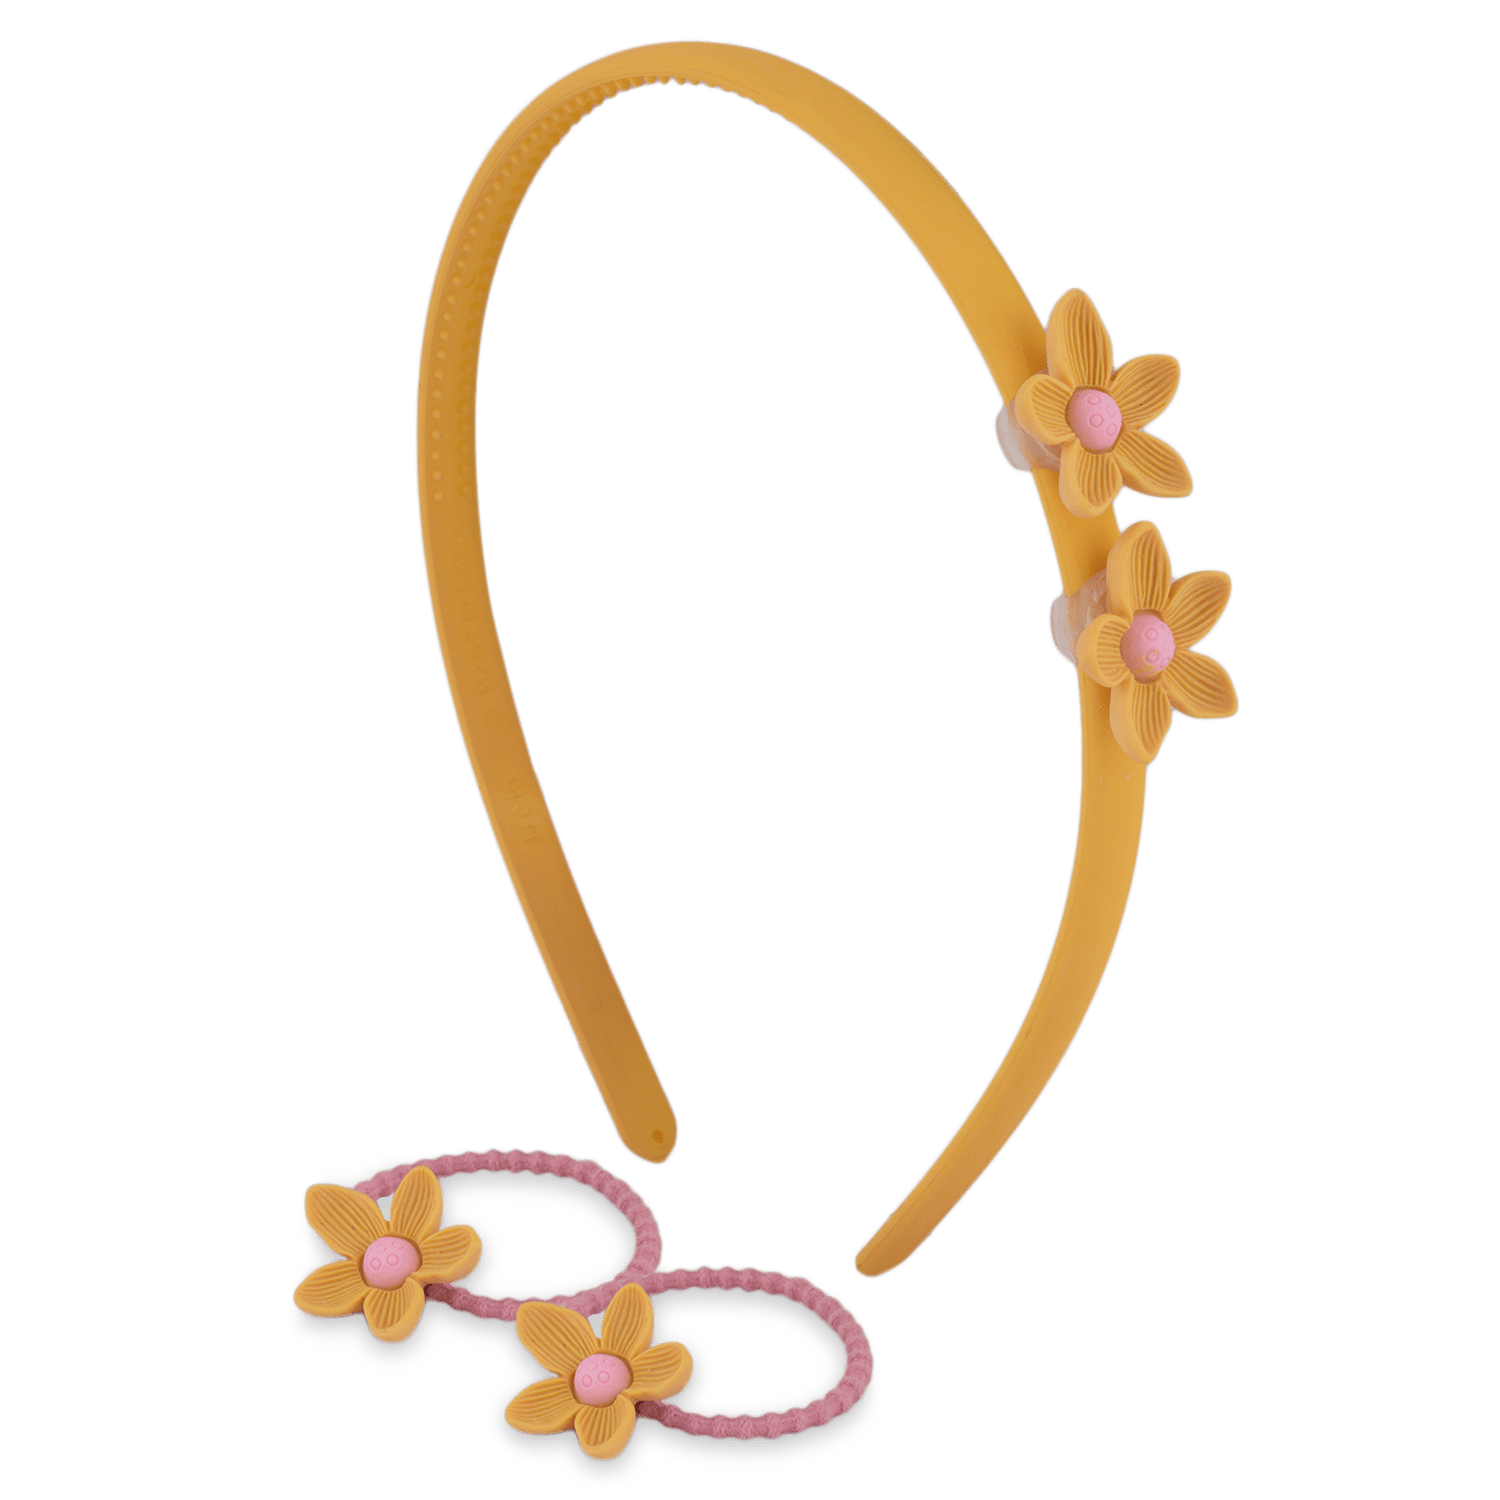 DAFFODIL HAIR ACCESSORY SET